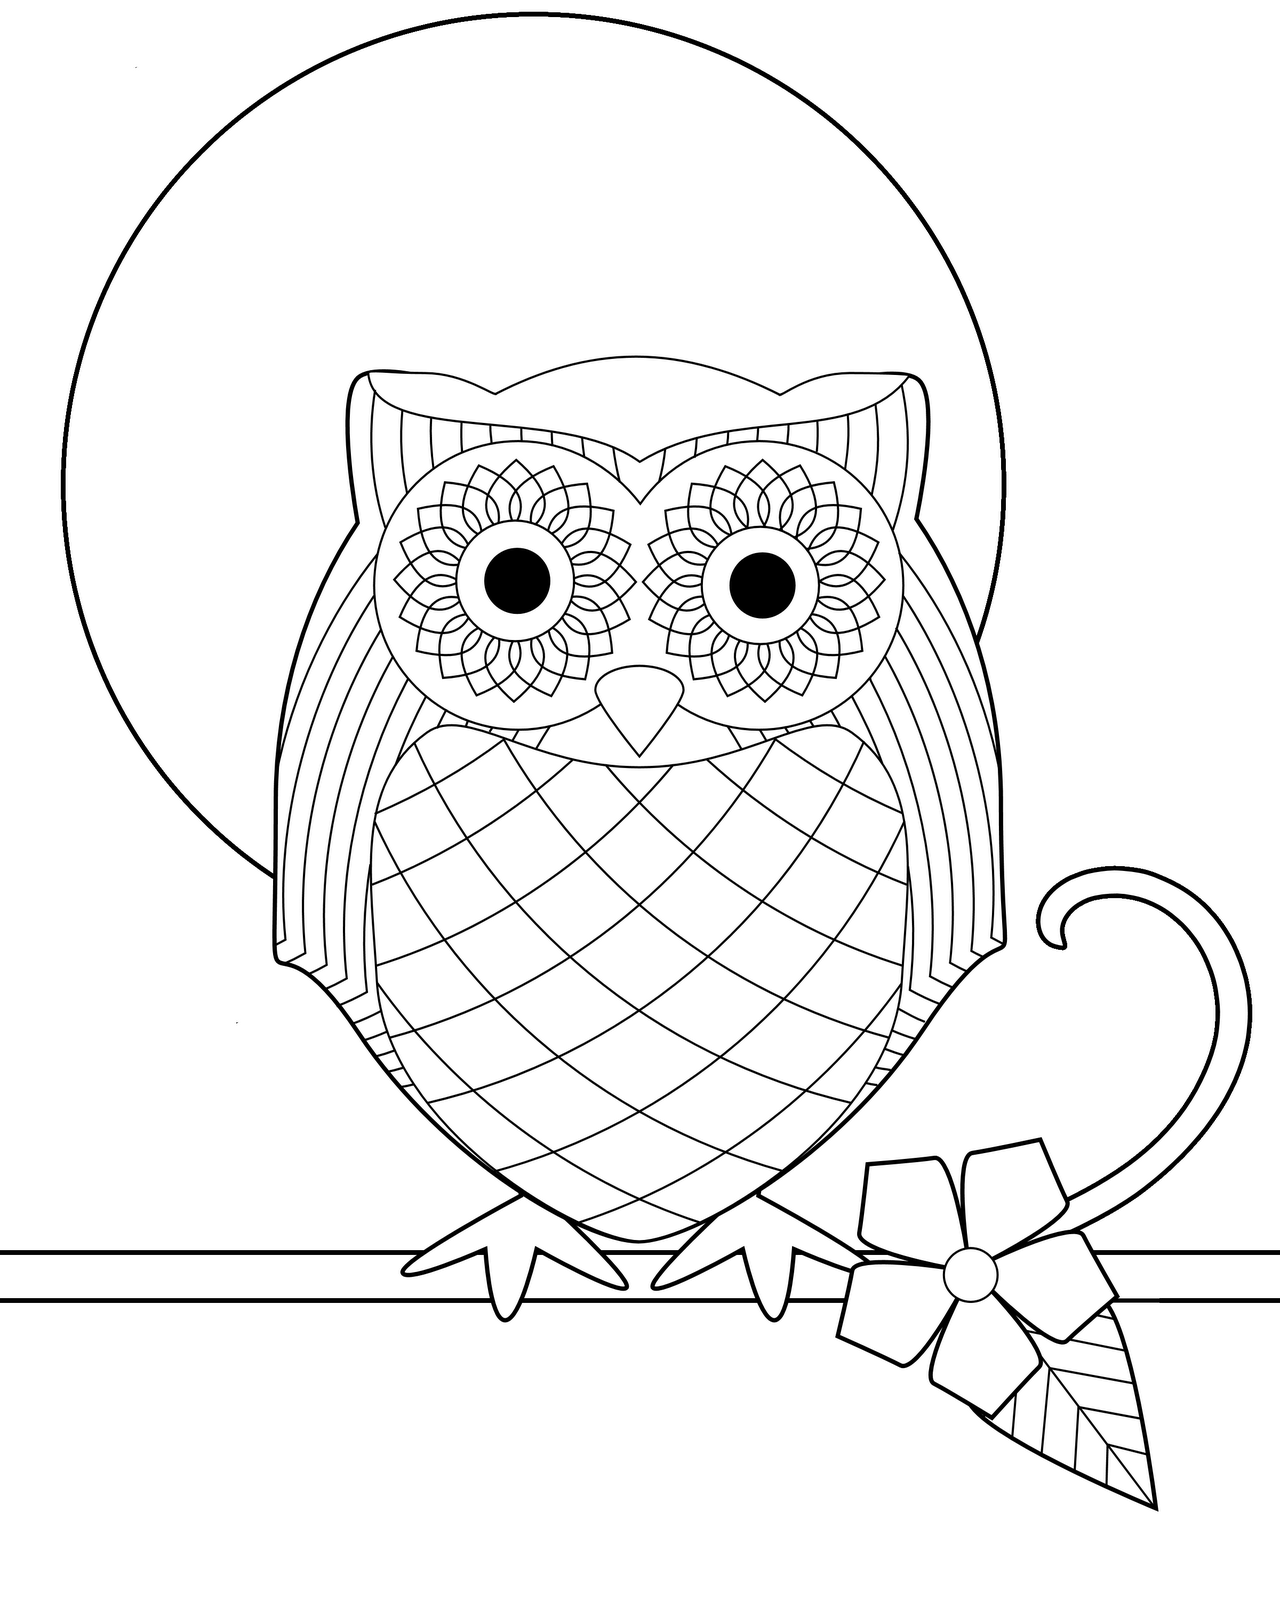 Owl Coloring Pages Patterns